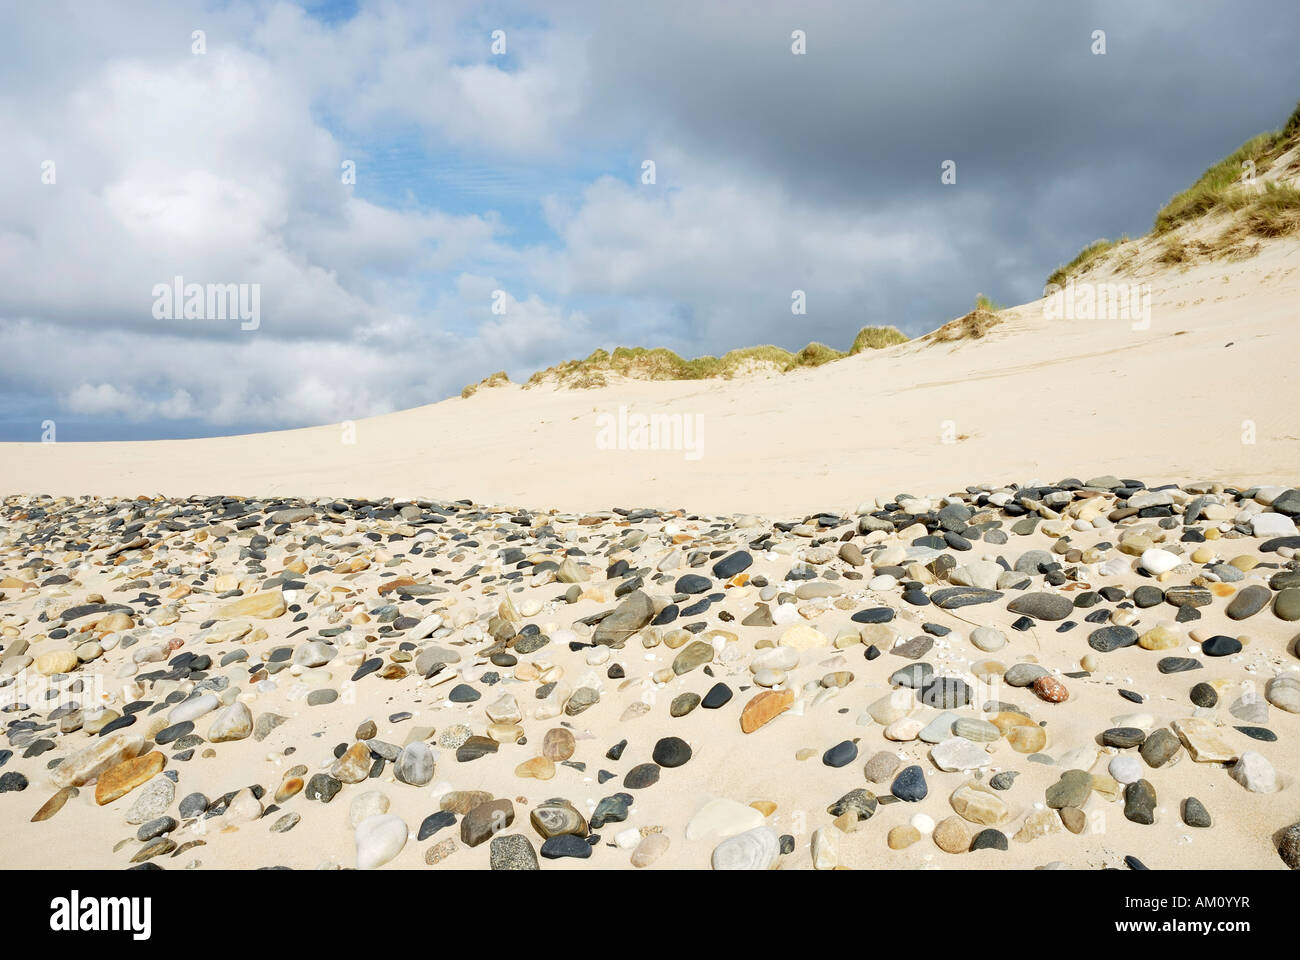 Polished pebbles of different geological origin representing recent coastline liberated by steady blowing wind in - Stock Image